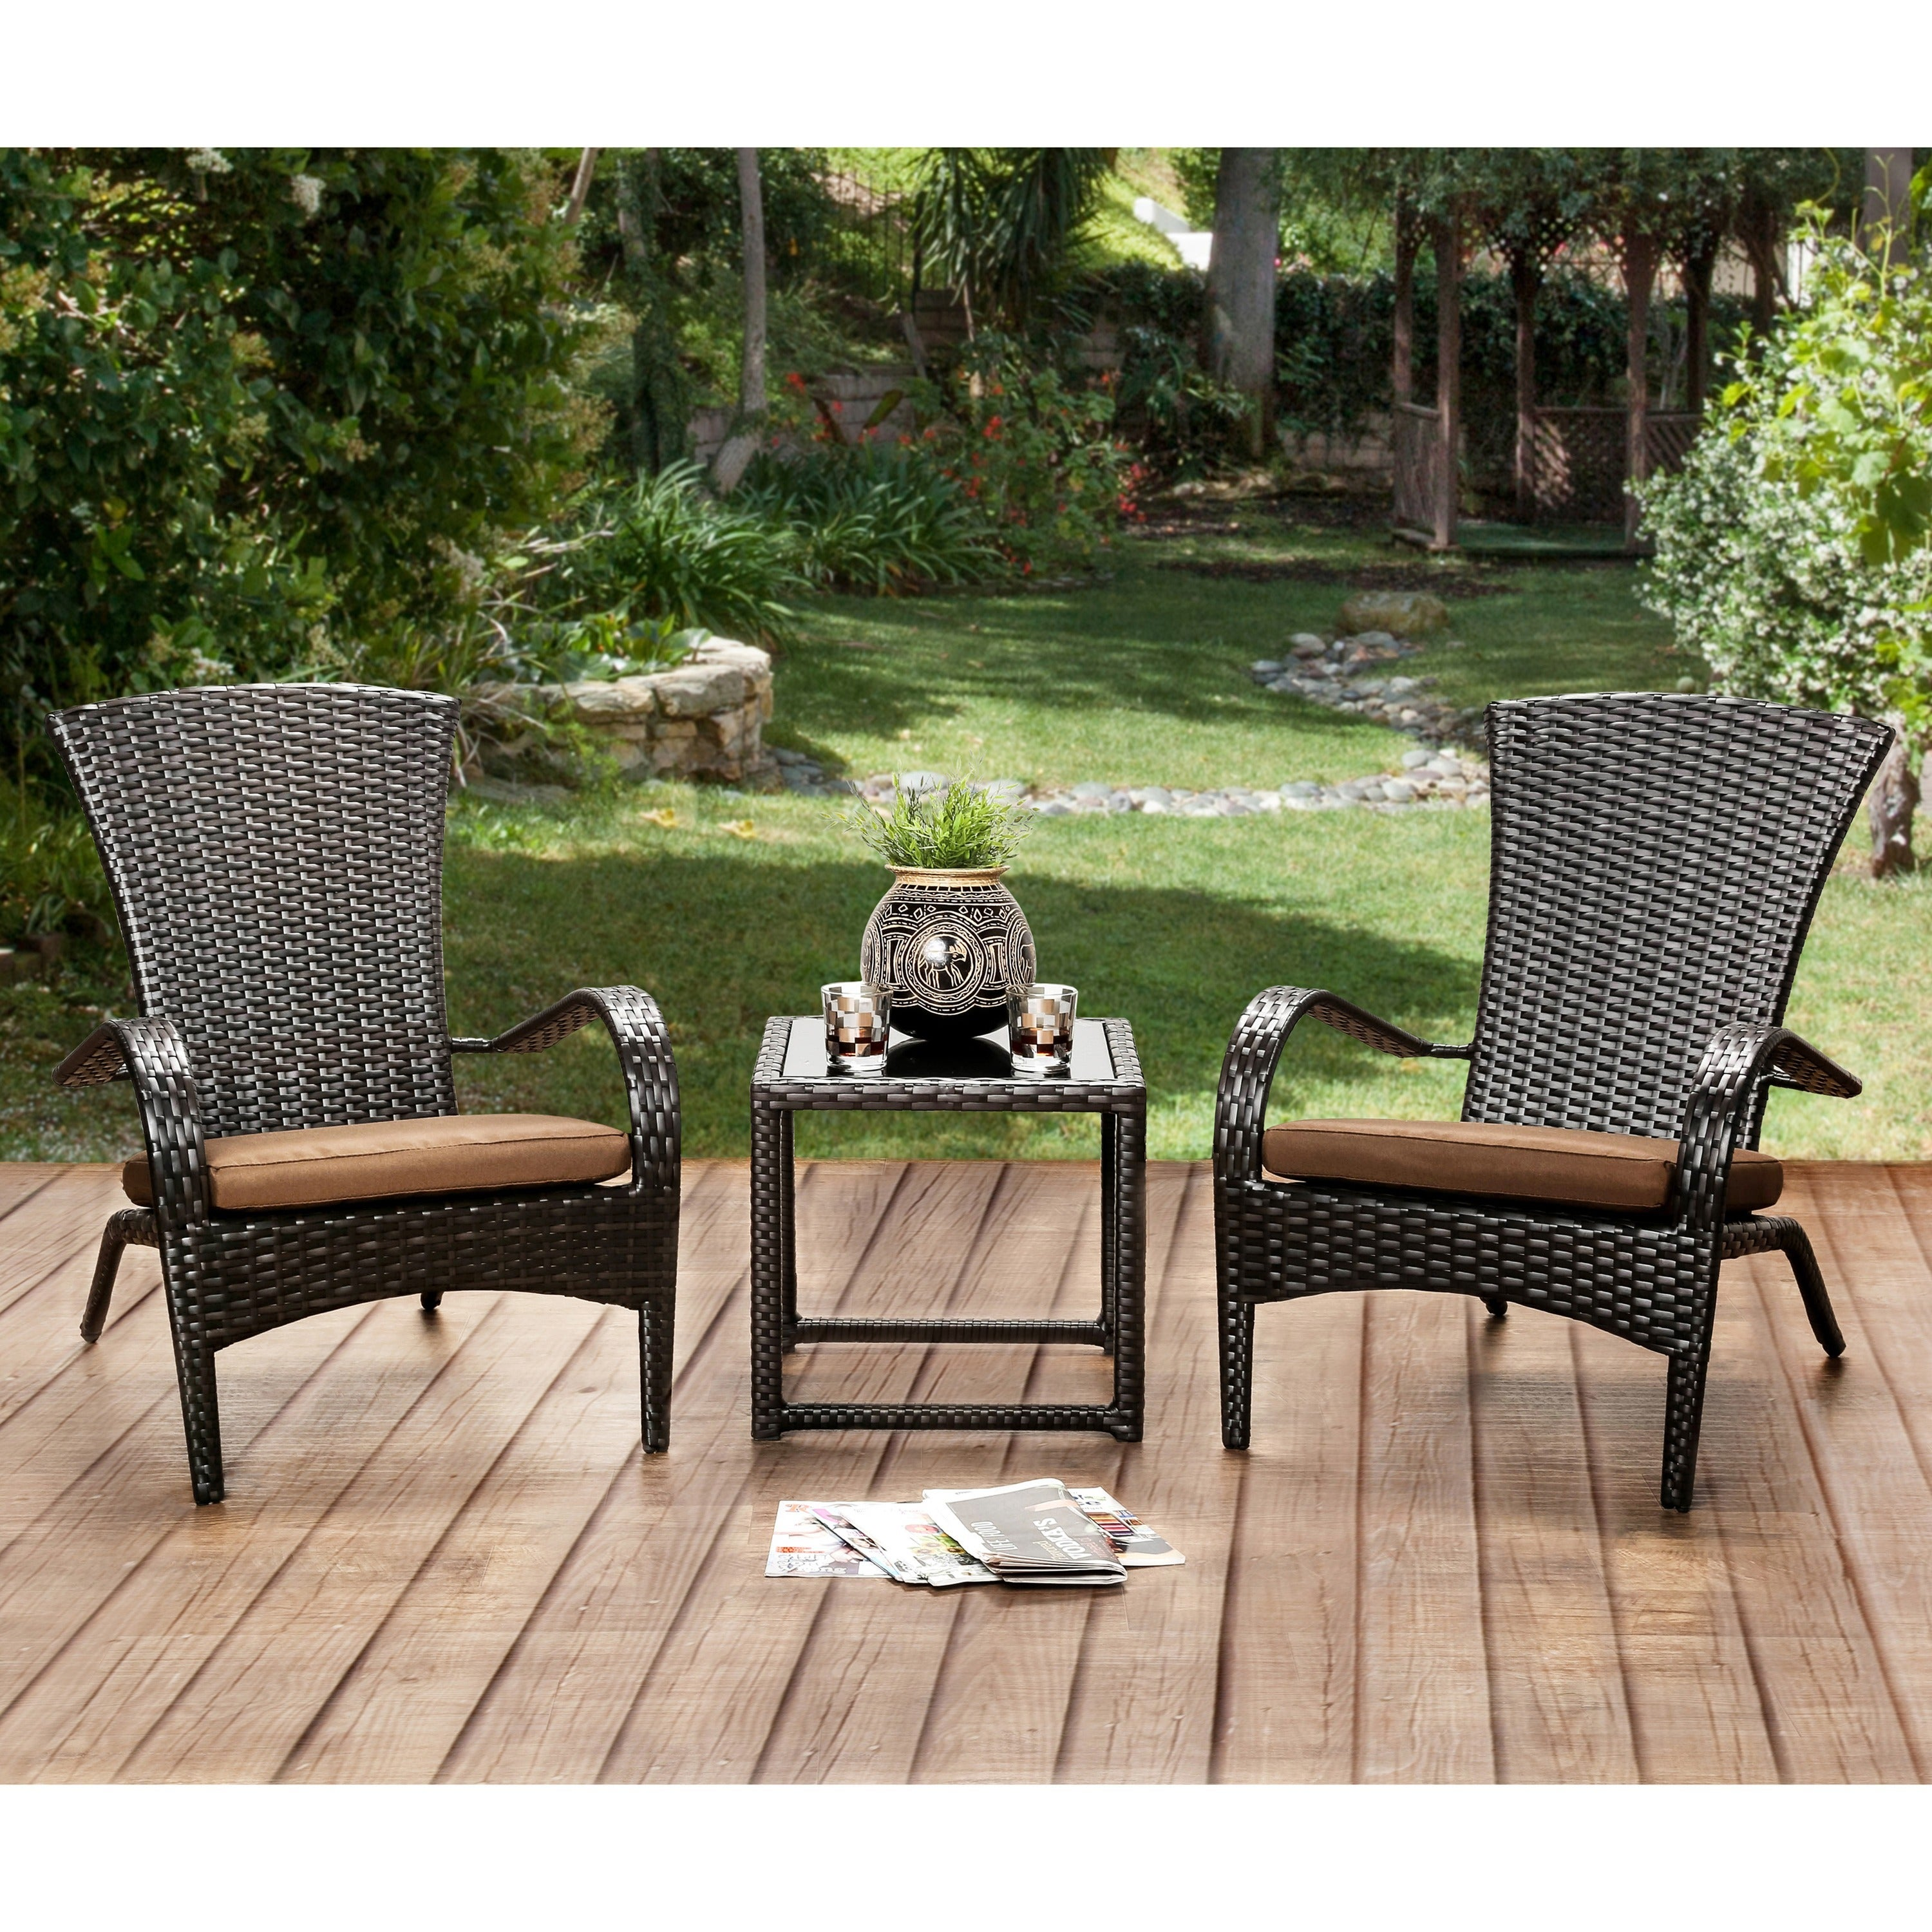 Furniture of america riley espresso wicker inspired patio chair set of 6